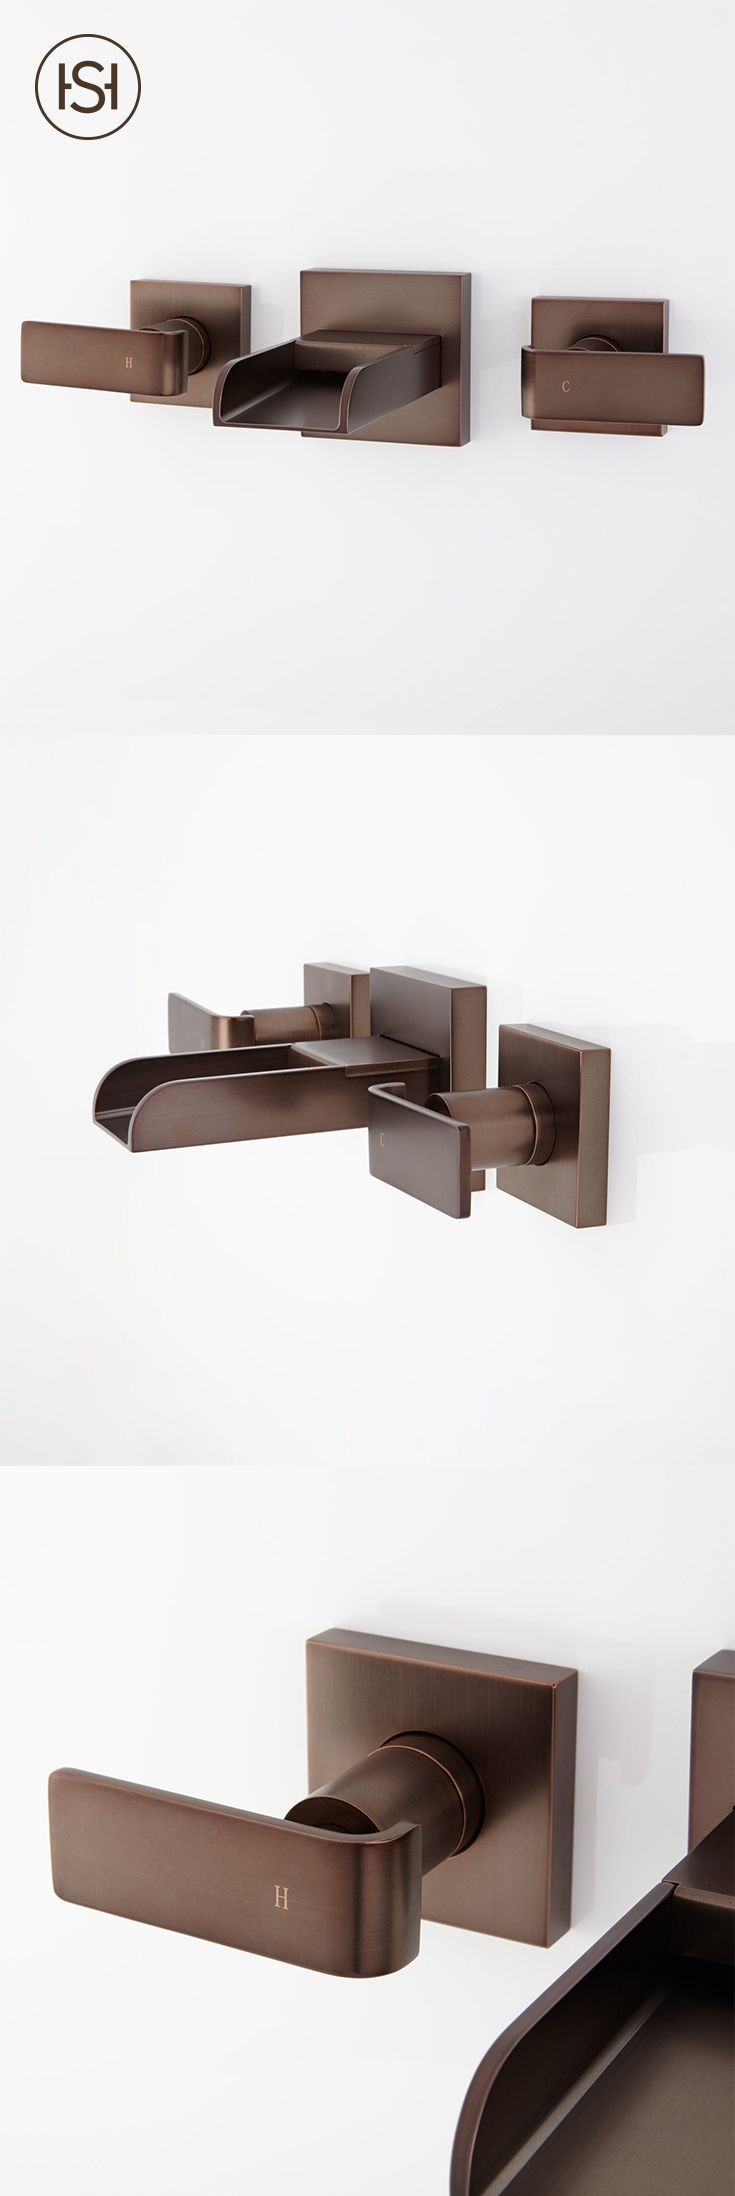 Your guests will be tickled by waterfall flow and sleek design of the Maleko Wall-Mount Waterfall Bathroom Faucet from Signature Hardware. #bathroomfaucets